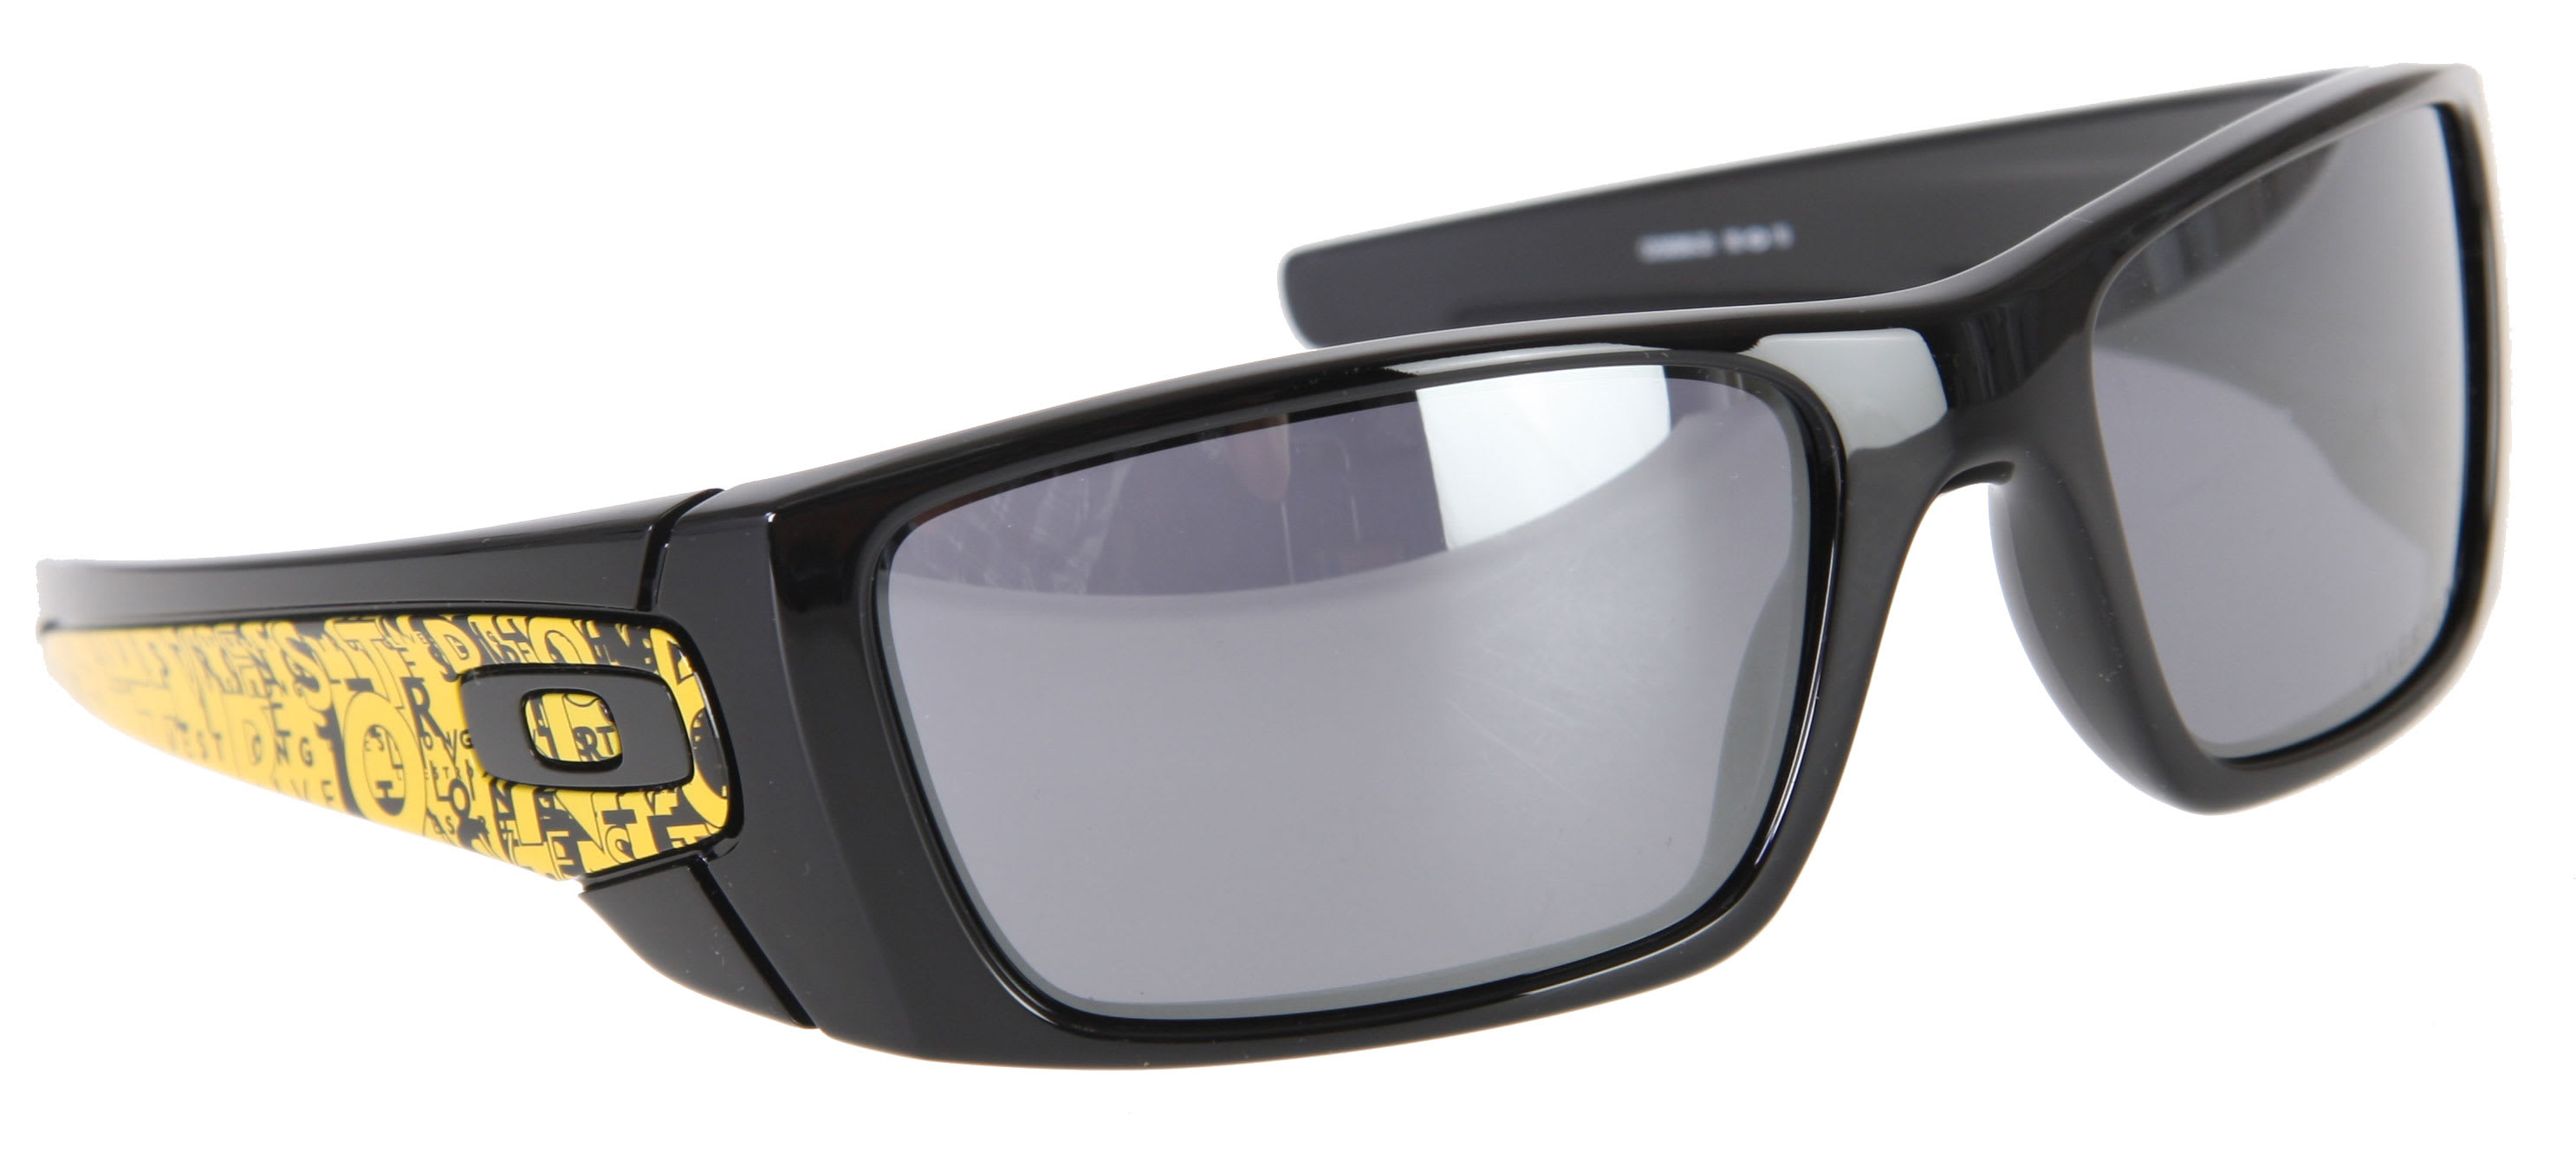 95679a421d0 Oakley Fuel Cell Livestrong Sunglasses - thumbnail 1